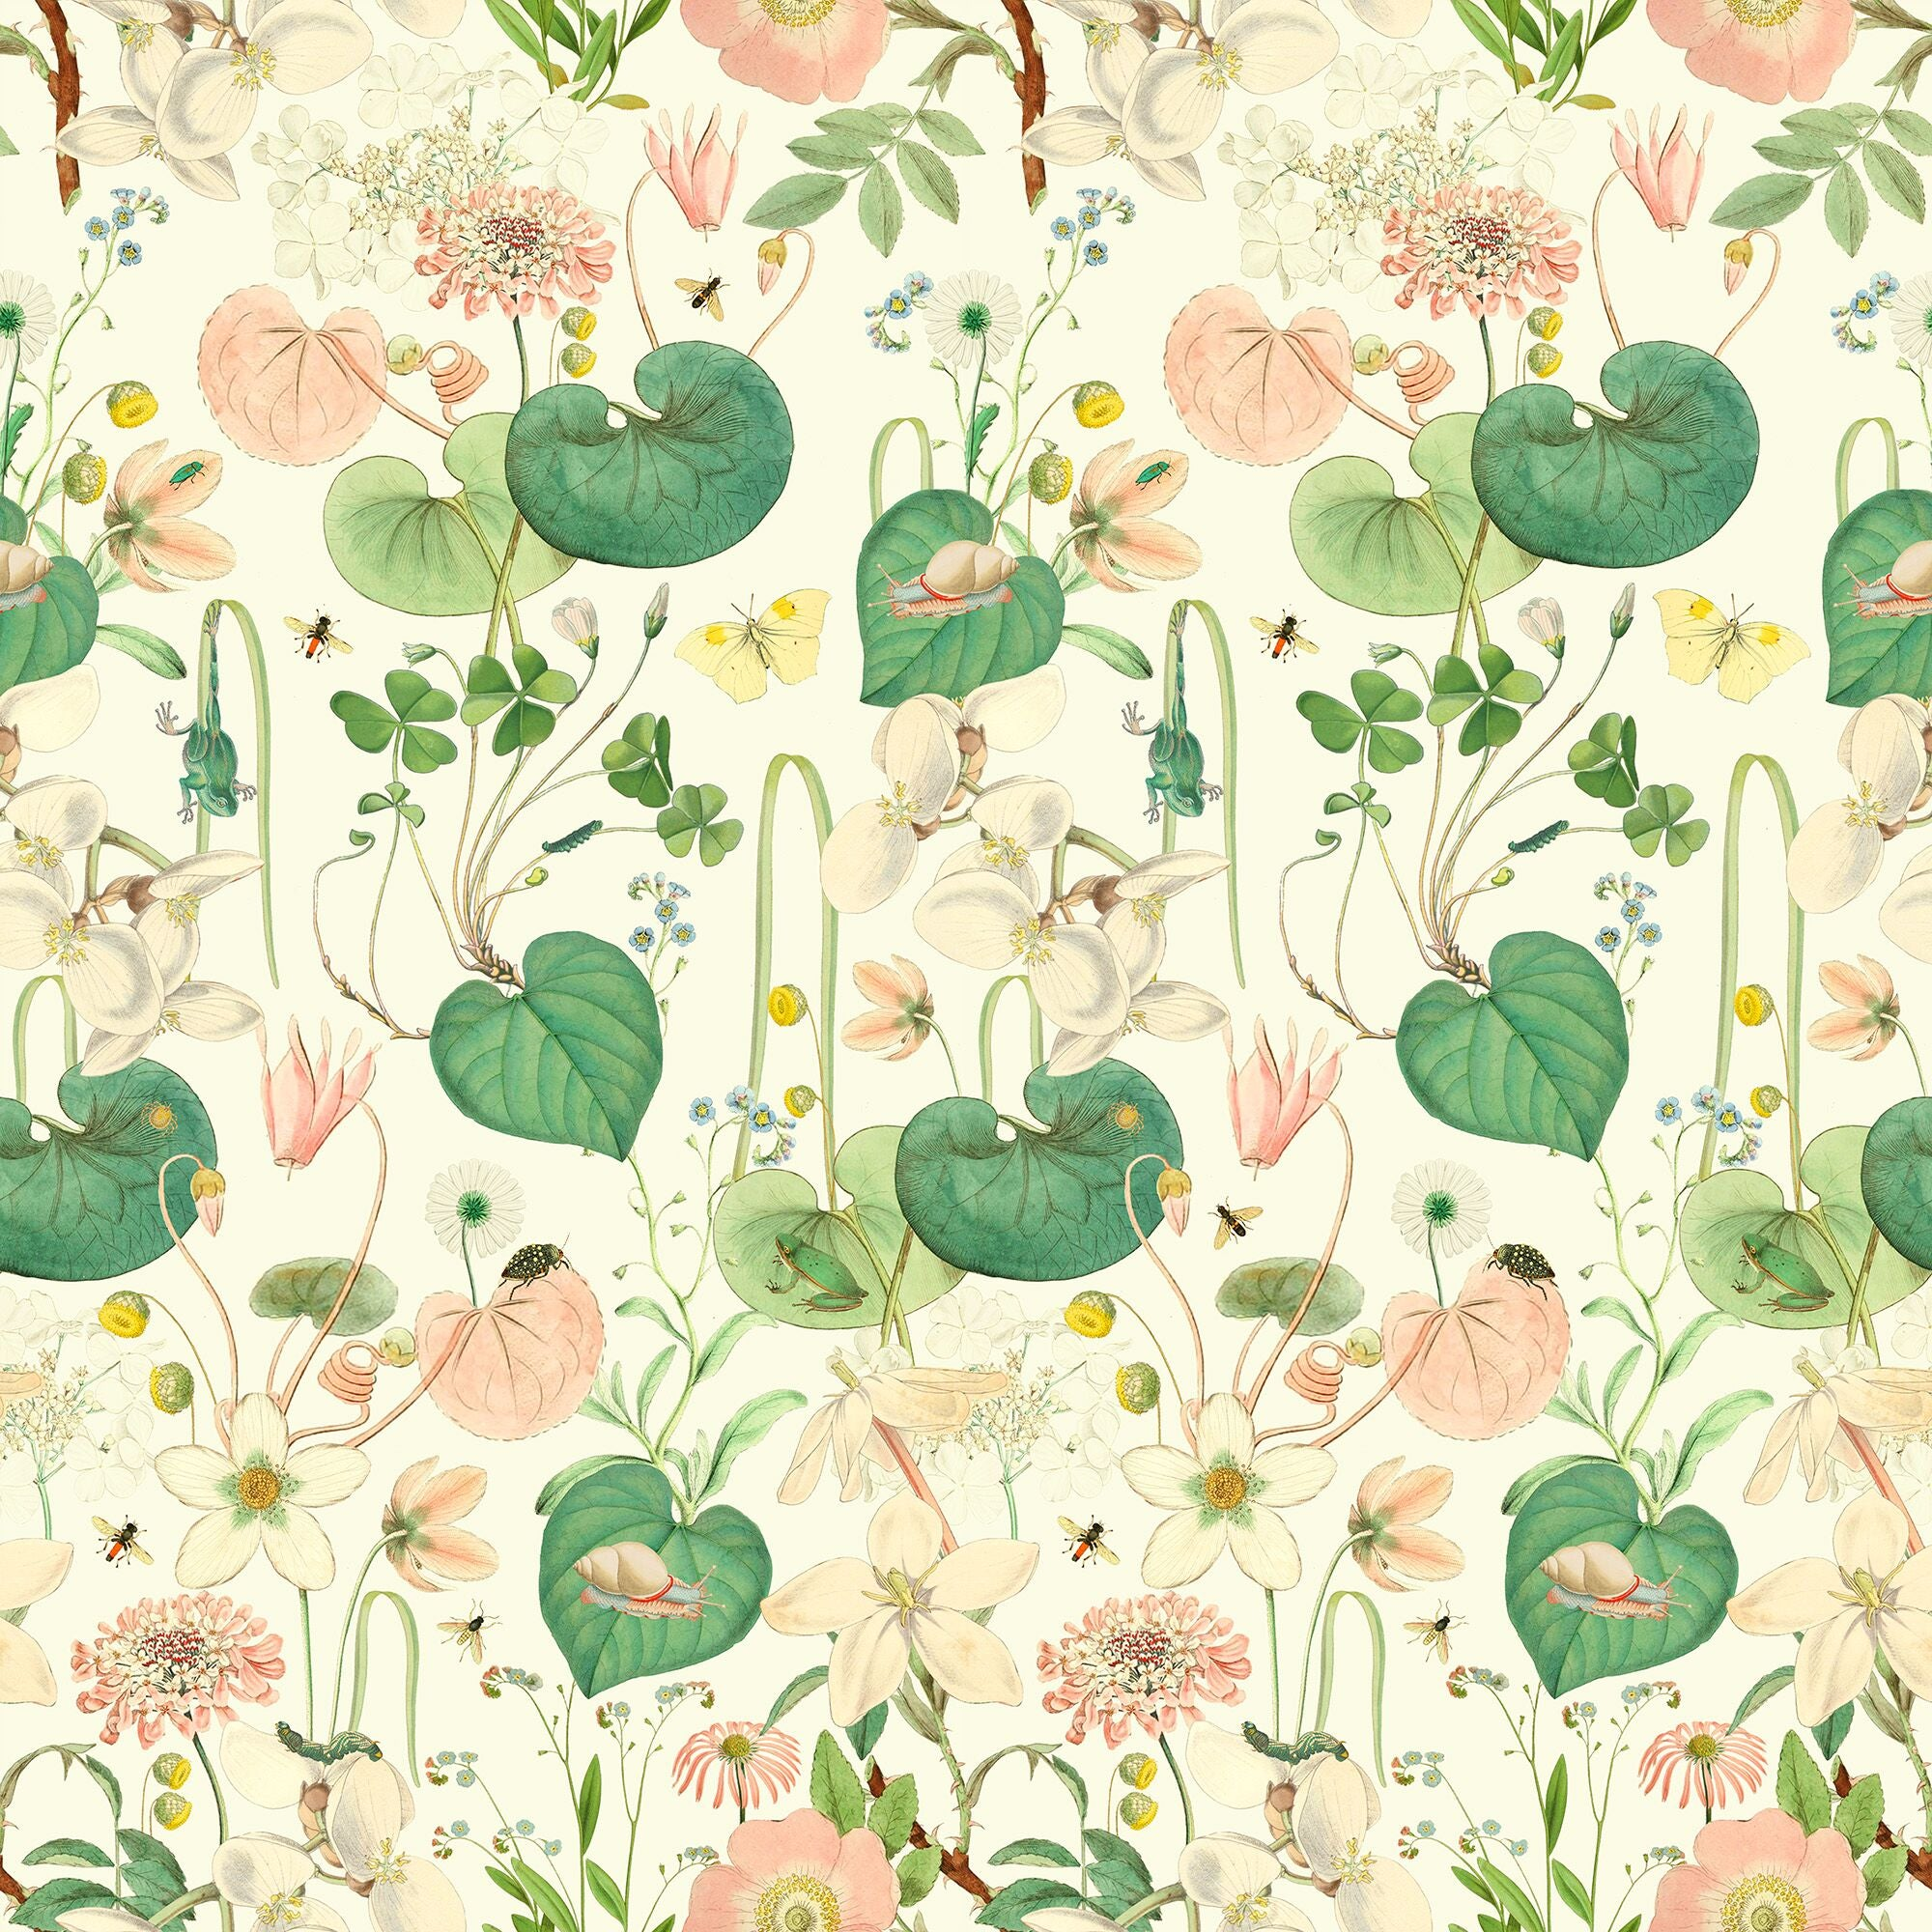 The Orchard Bloom - Wallpaper Sample